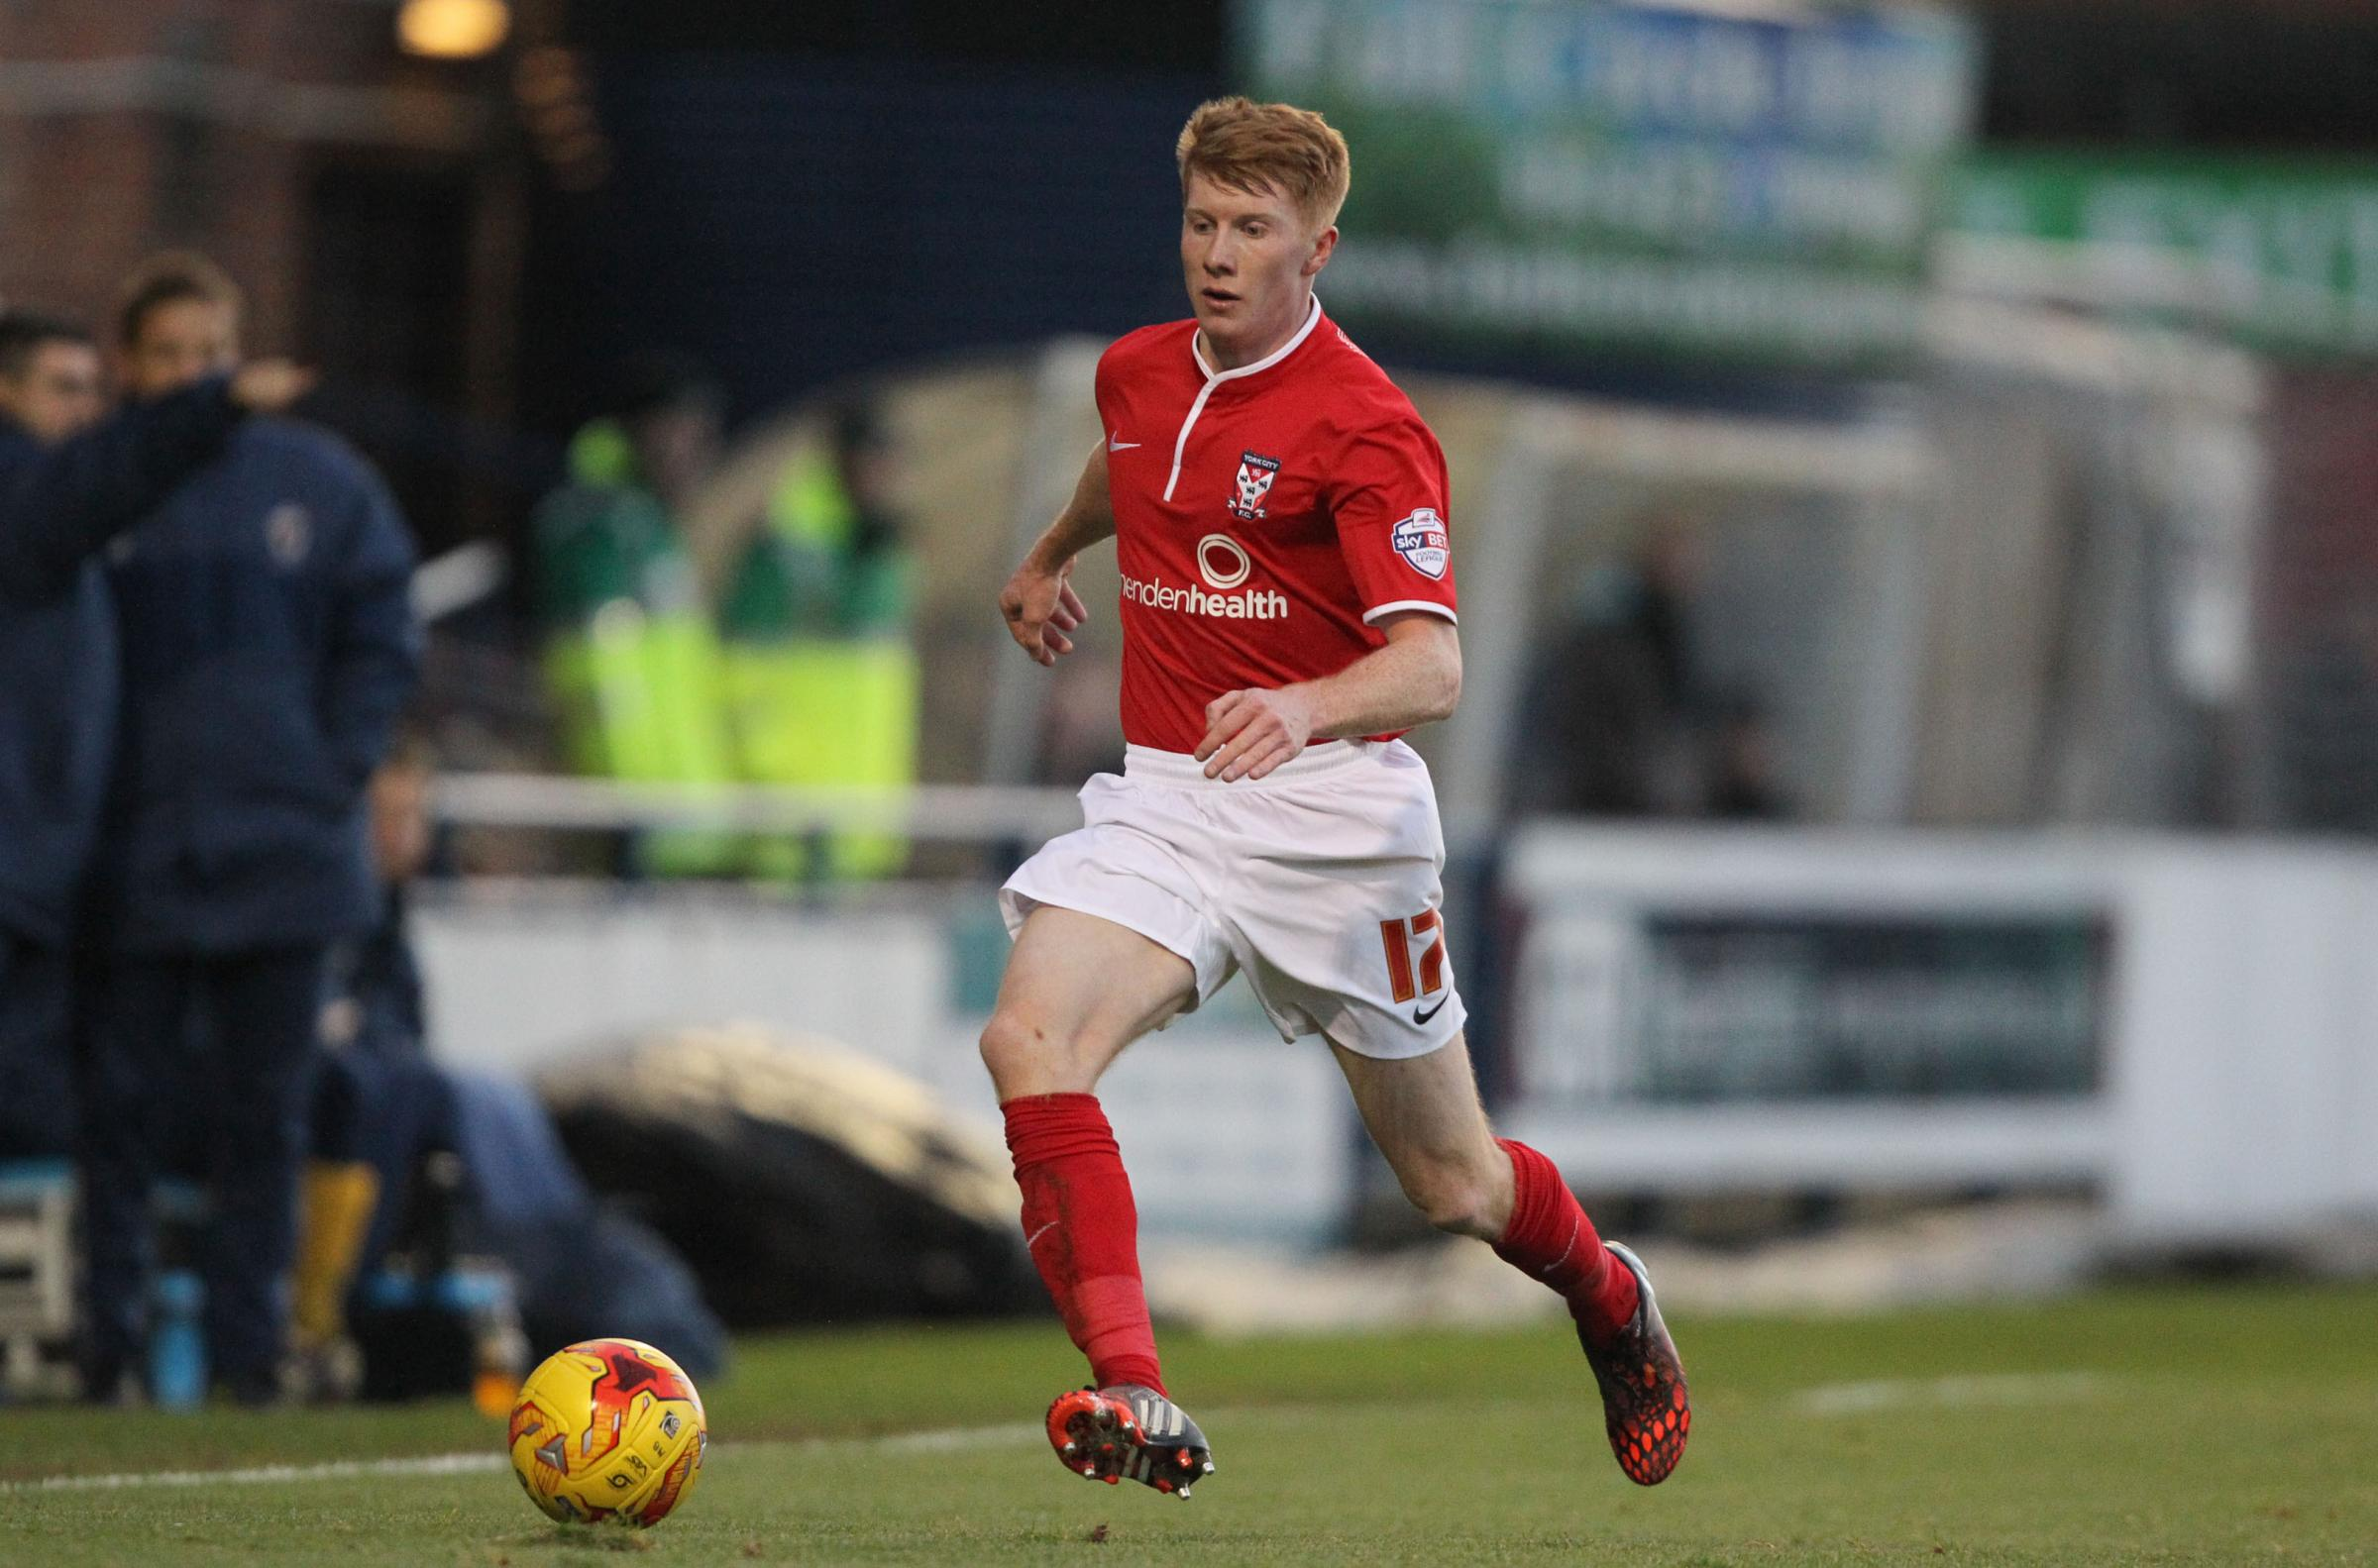 FORWARD THINKING: York City boss Russ Wilcox is pondering whether to use right-back Brad Halliday further up the pitch